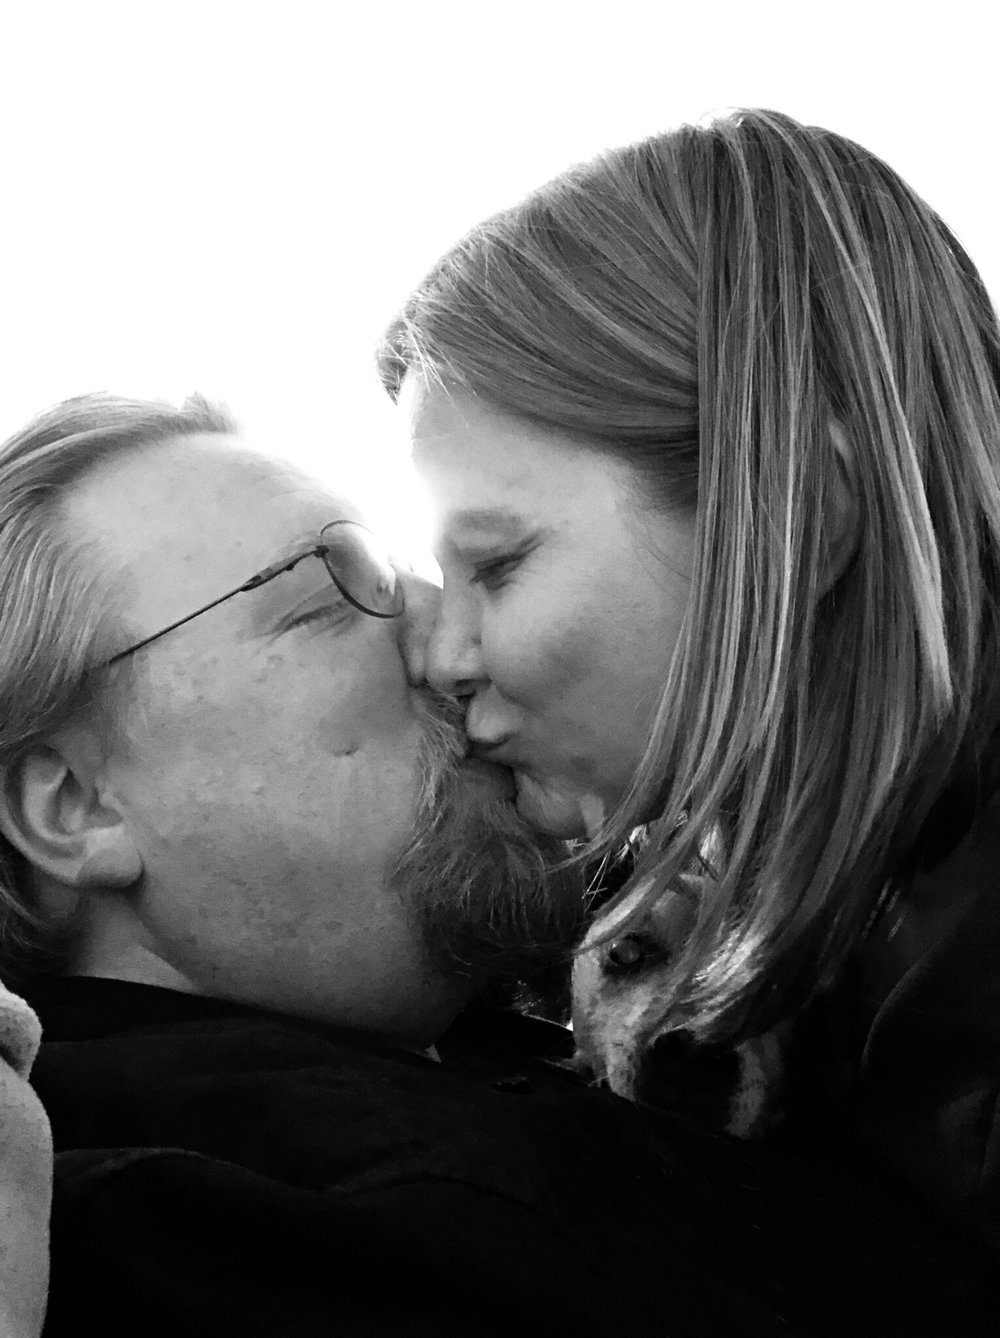 One of my personal favorite sounds is the sound of our door opening when one of us comes home, - anticipating the warm hugs and kisses that let me know that I am special and missed when we are apart. (This is a lot more true now that we have been practicing Gottman strategies for a while.)